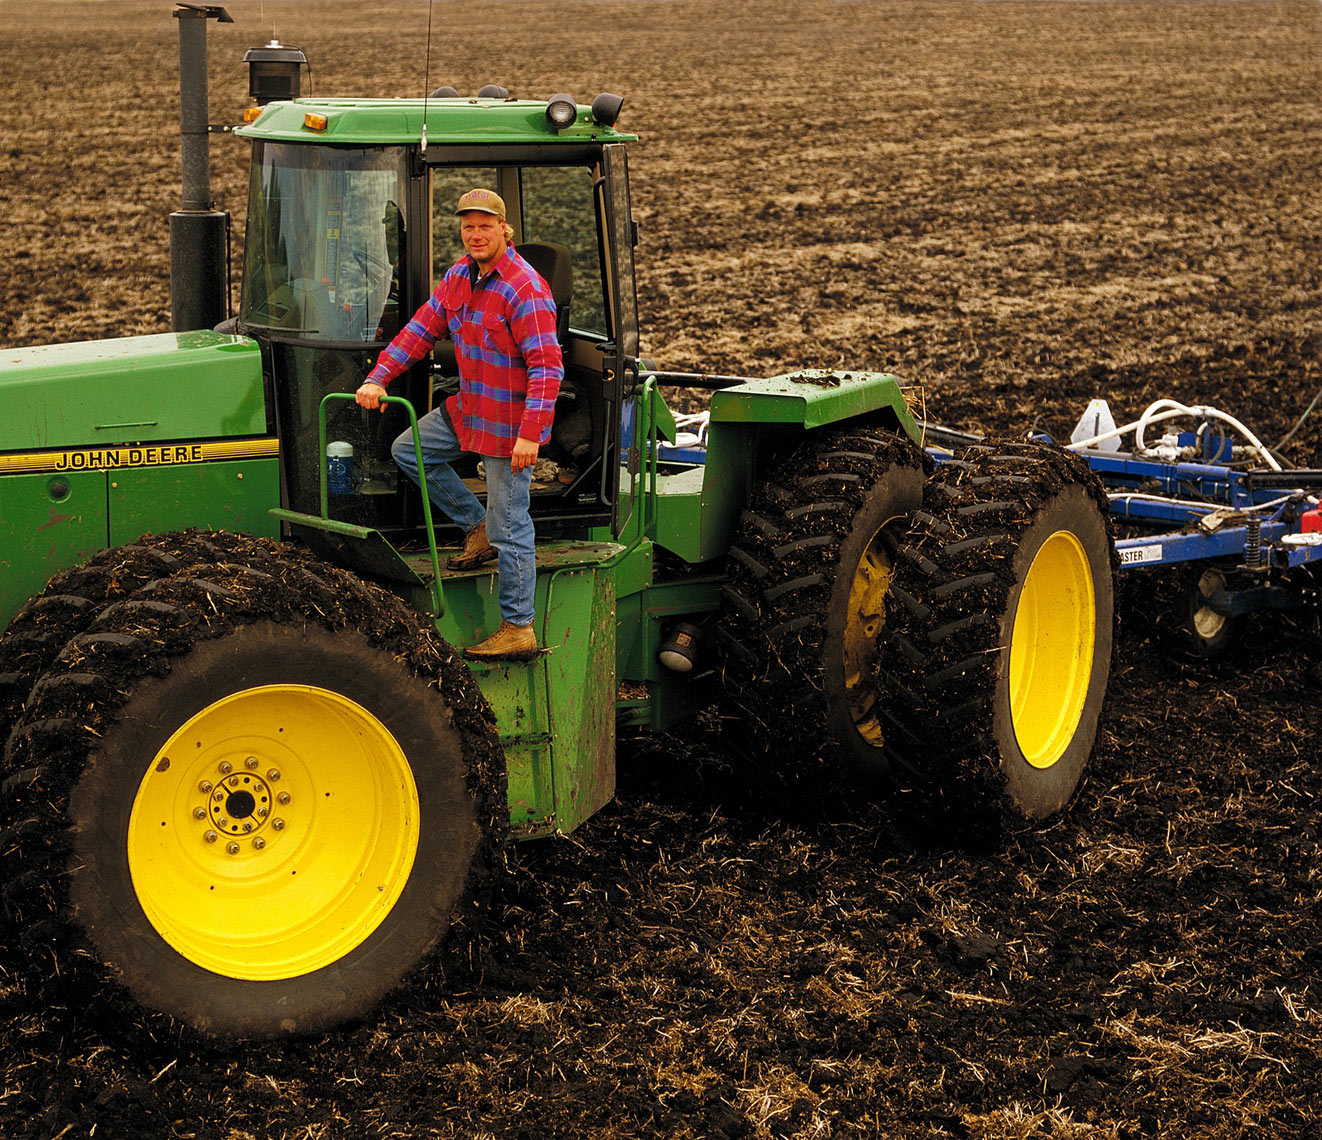 Location People Agriculture Farm equipment Lifestyle -Rick Peters